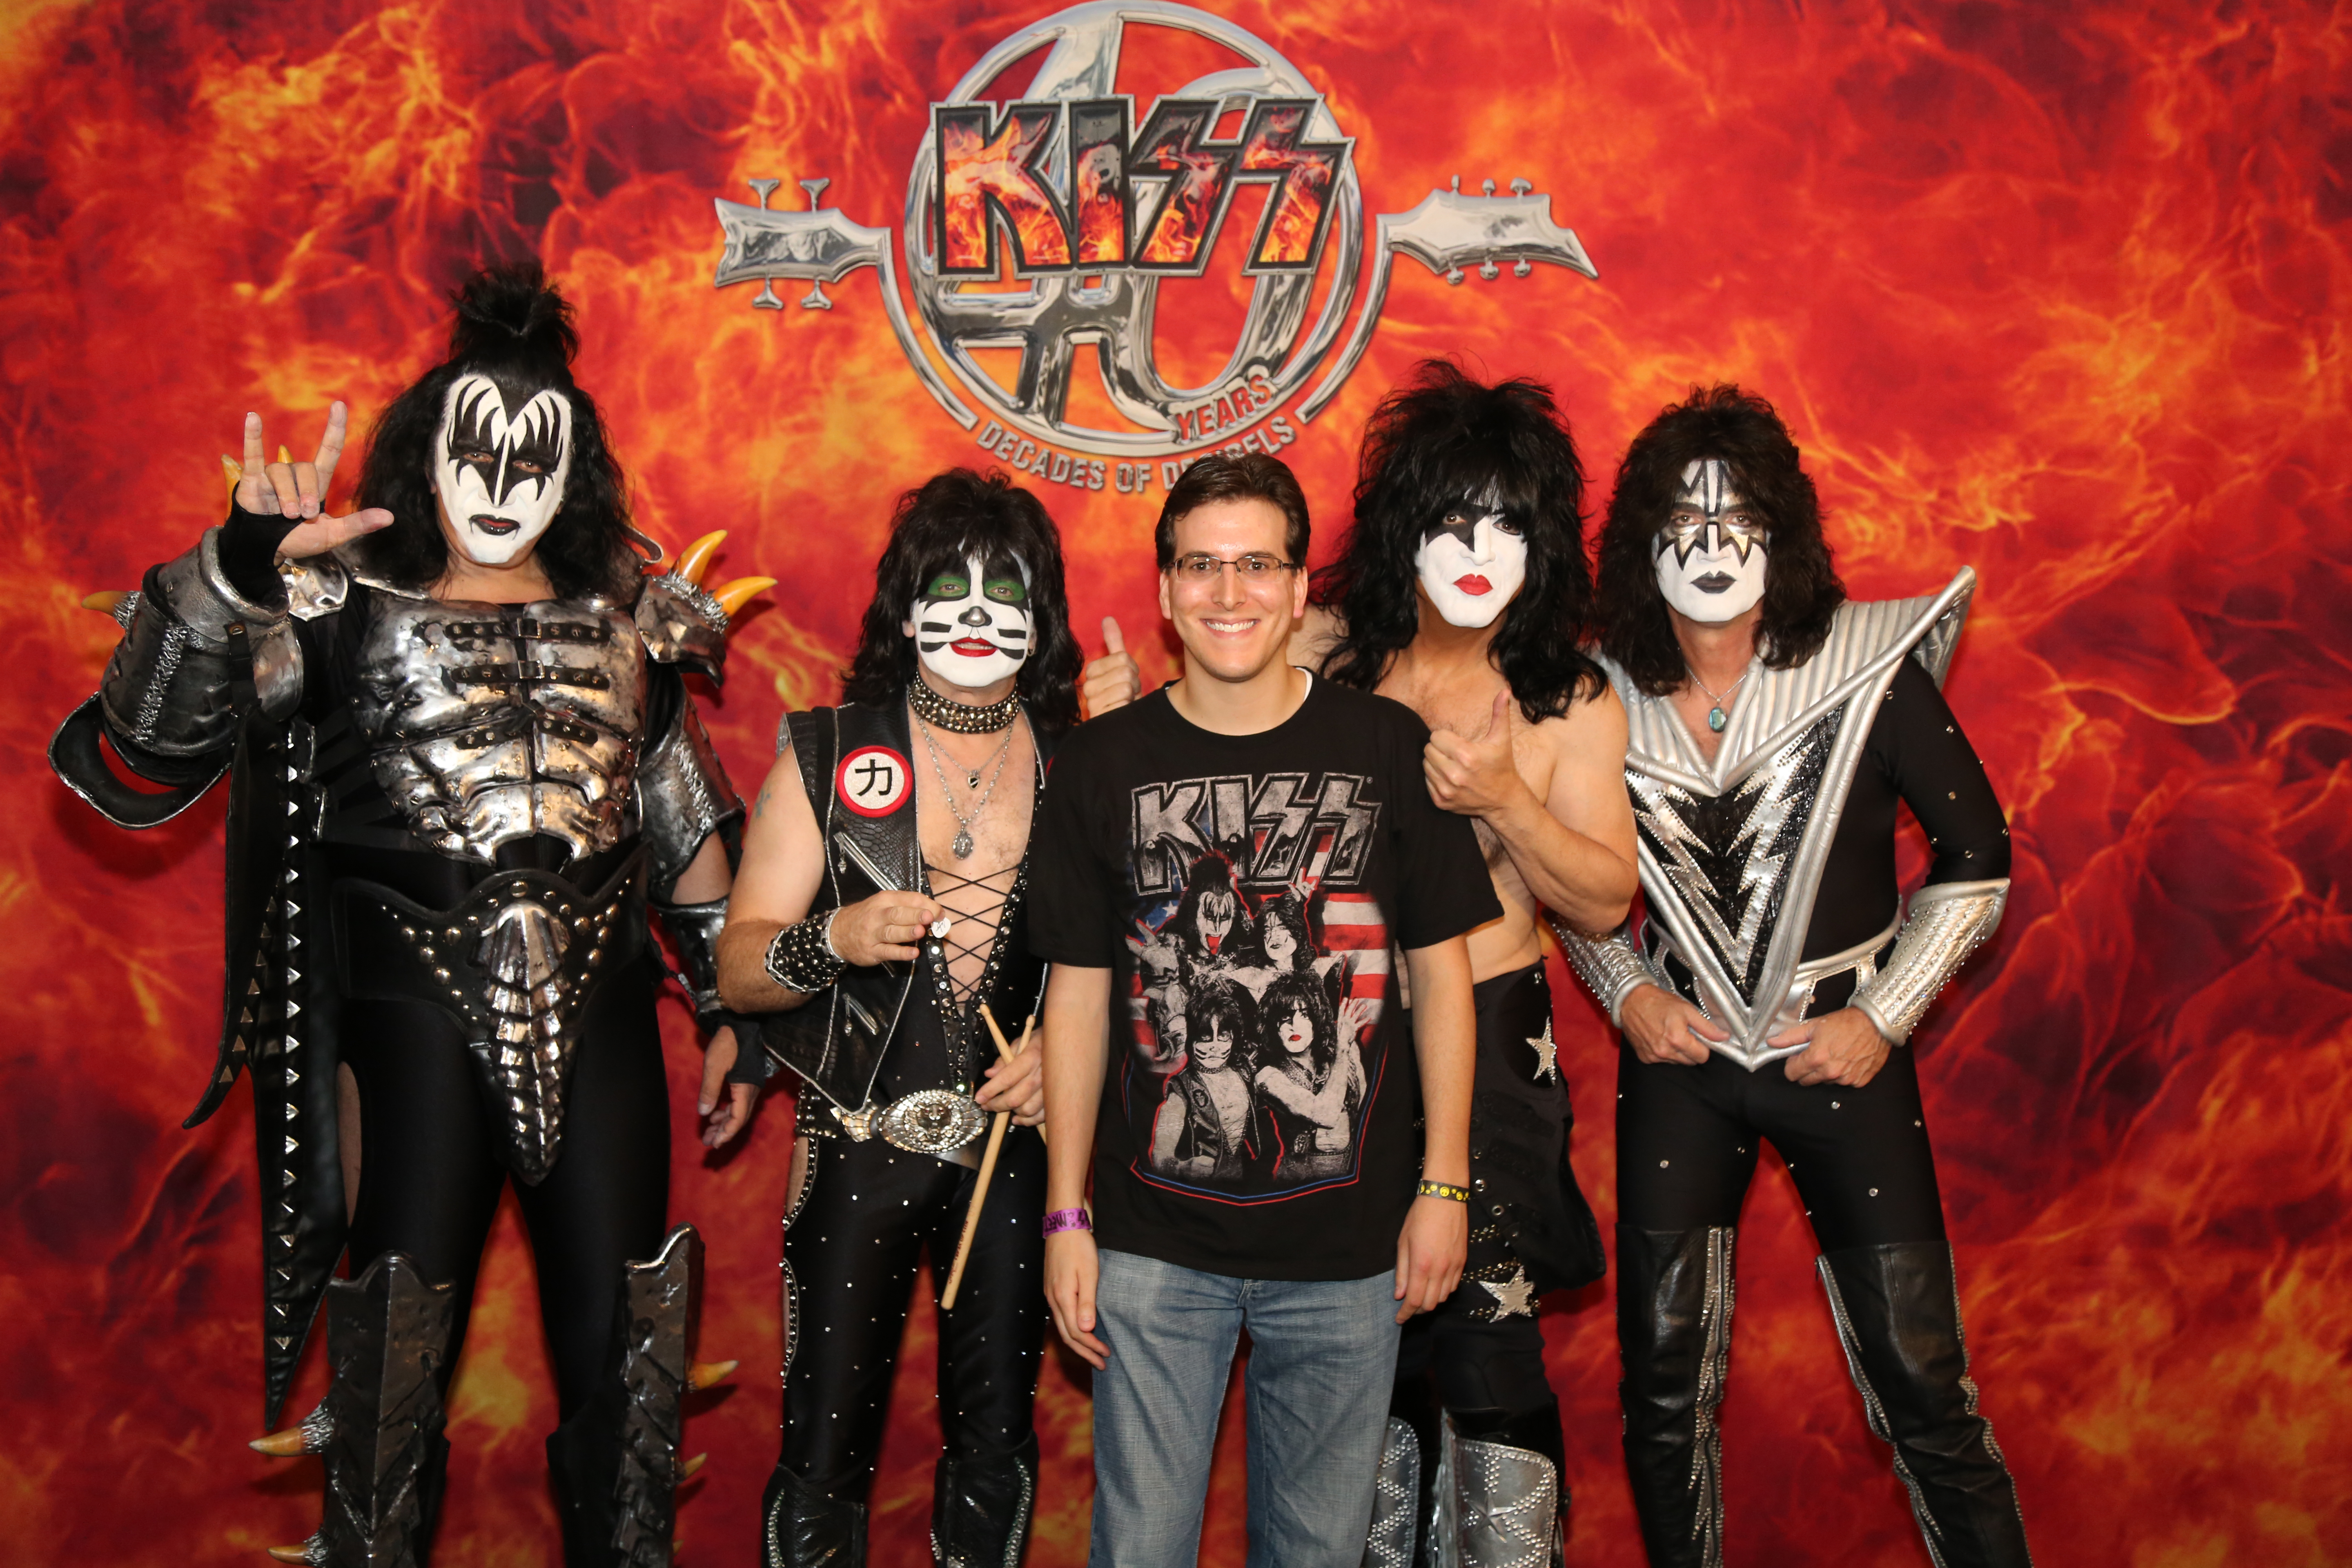 Kiss the best show on earth michael cavacini once i finished getting my photo taken with kiss i lined up with the other photographers to be led into the pit area between the stage and the first row m4hsunfo